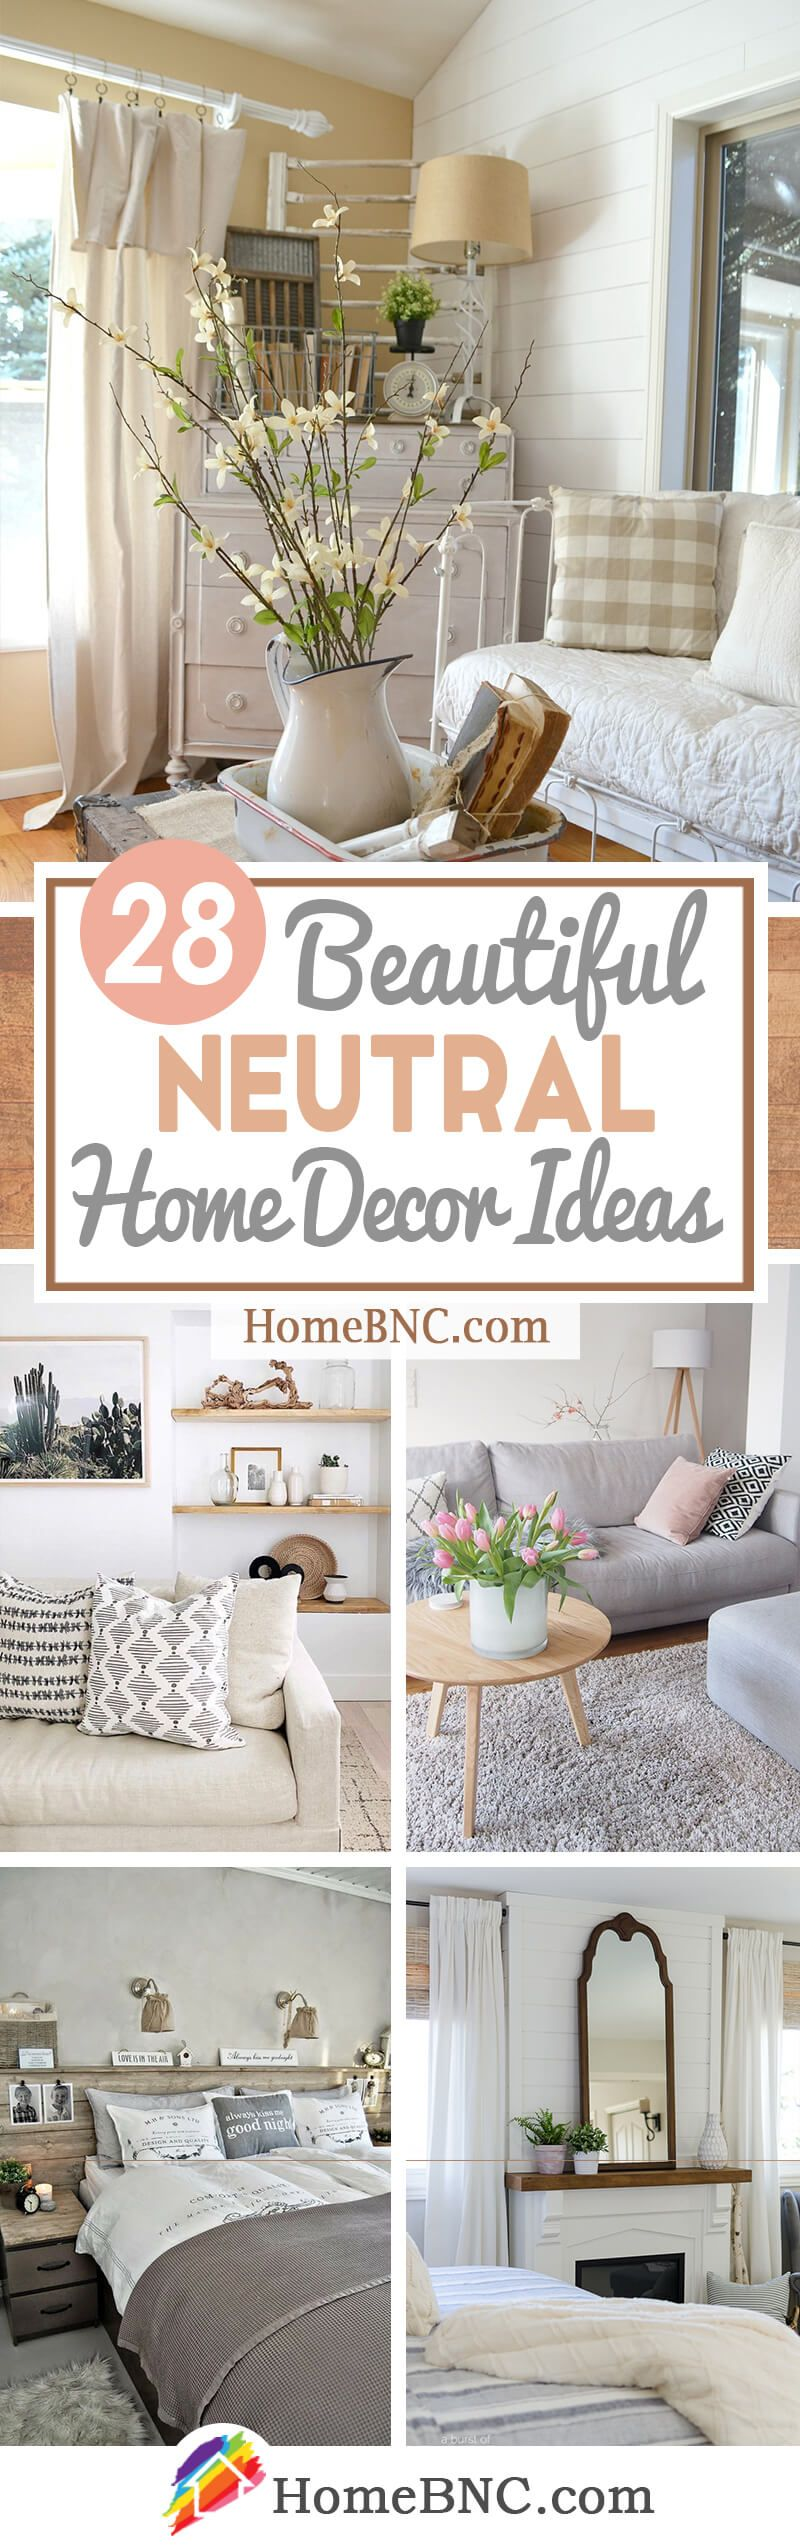 28 Best Neutral Home Decor Ideas And Designs For 2018